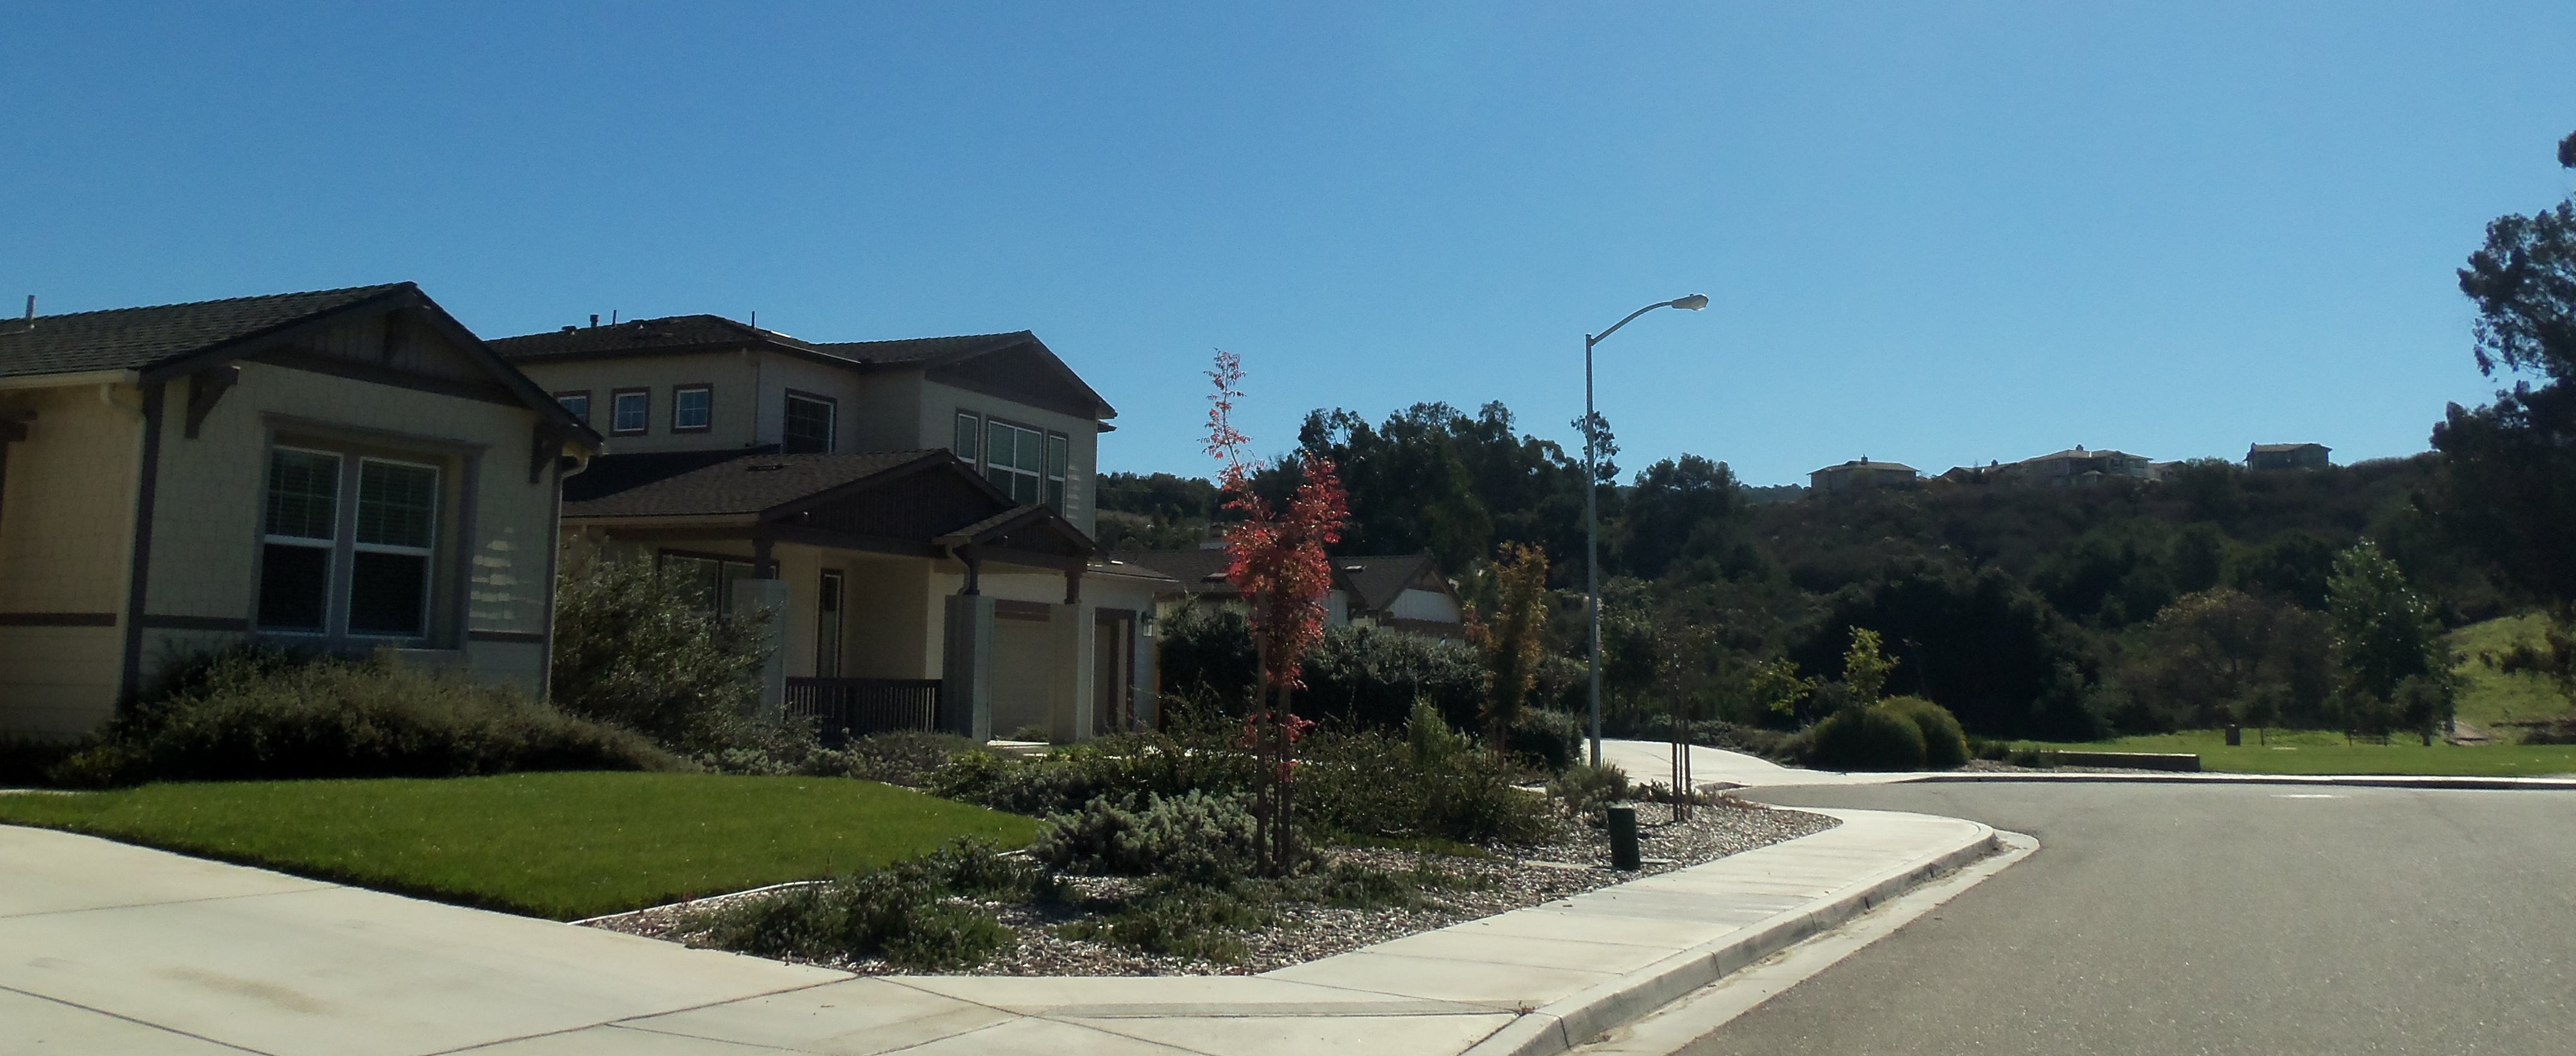 Cobblestone Creek Homes in Orcutt, CA